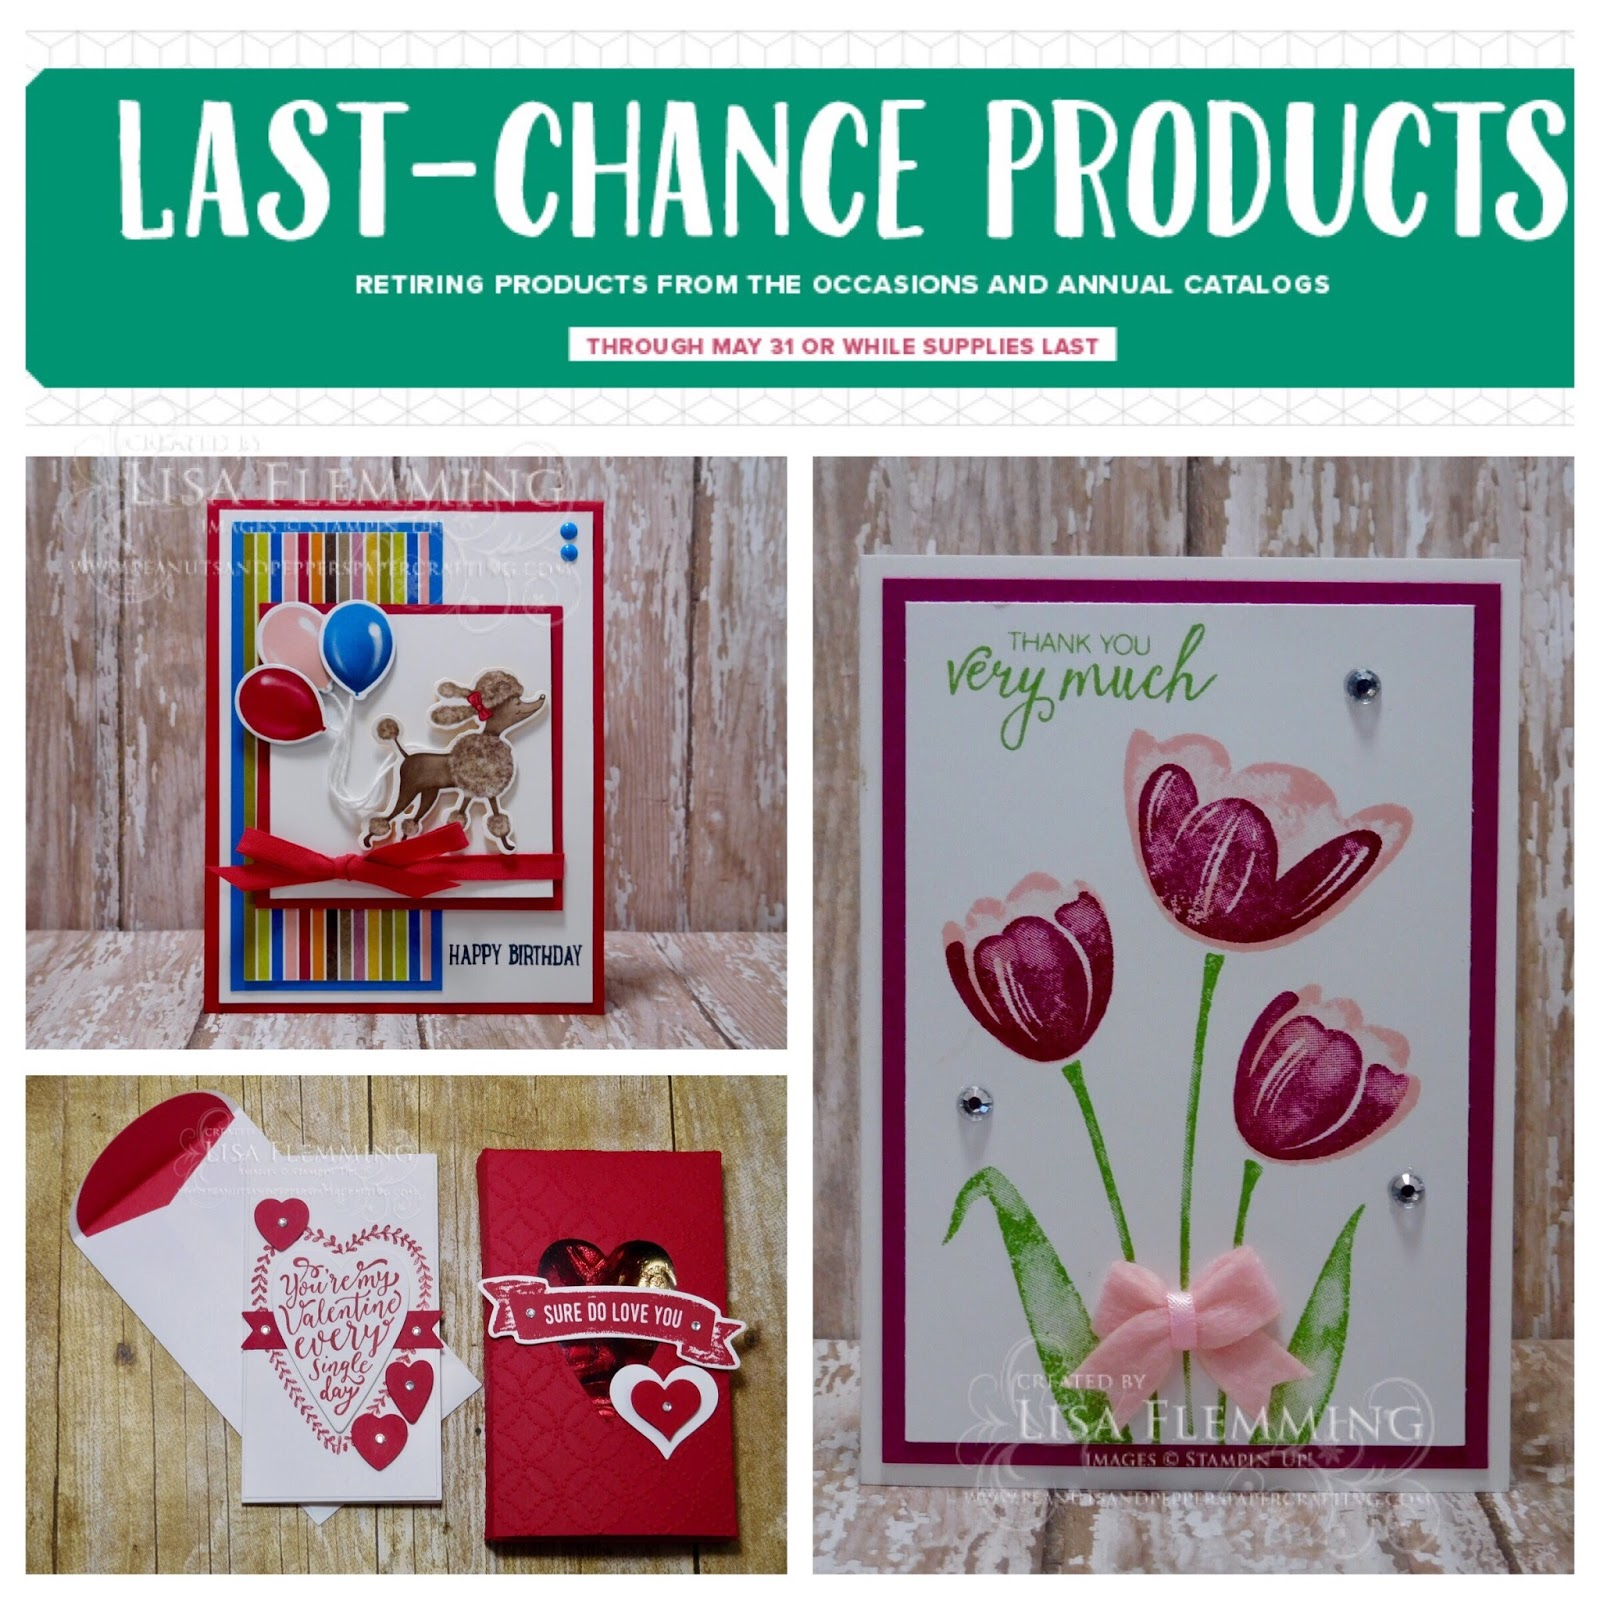 What's Up! Wednesday - Last Chance Products (Get Them While